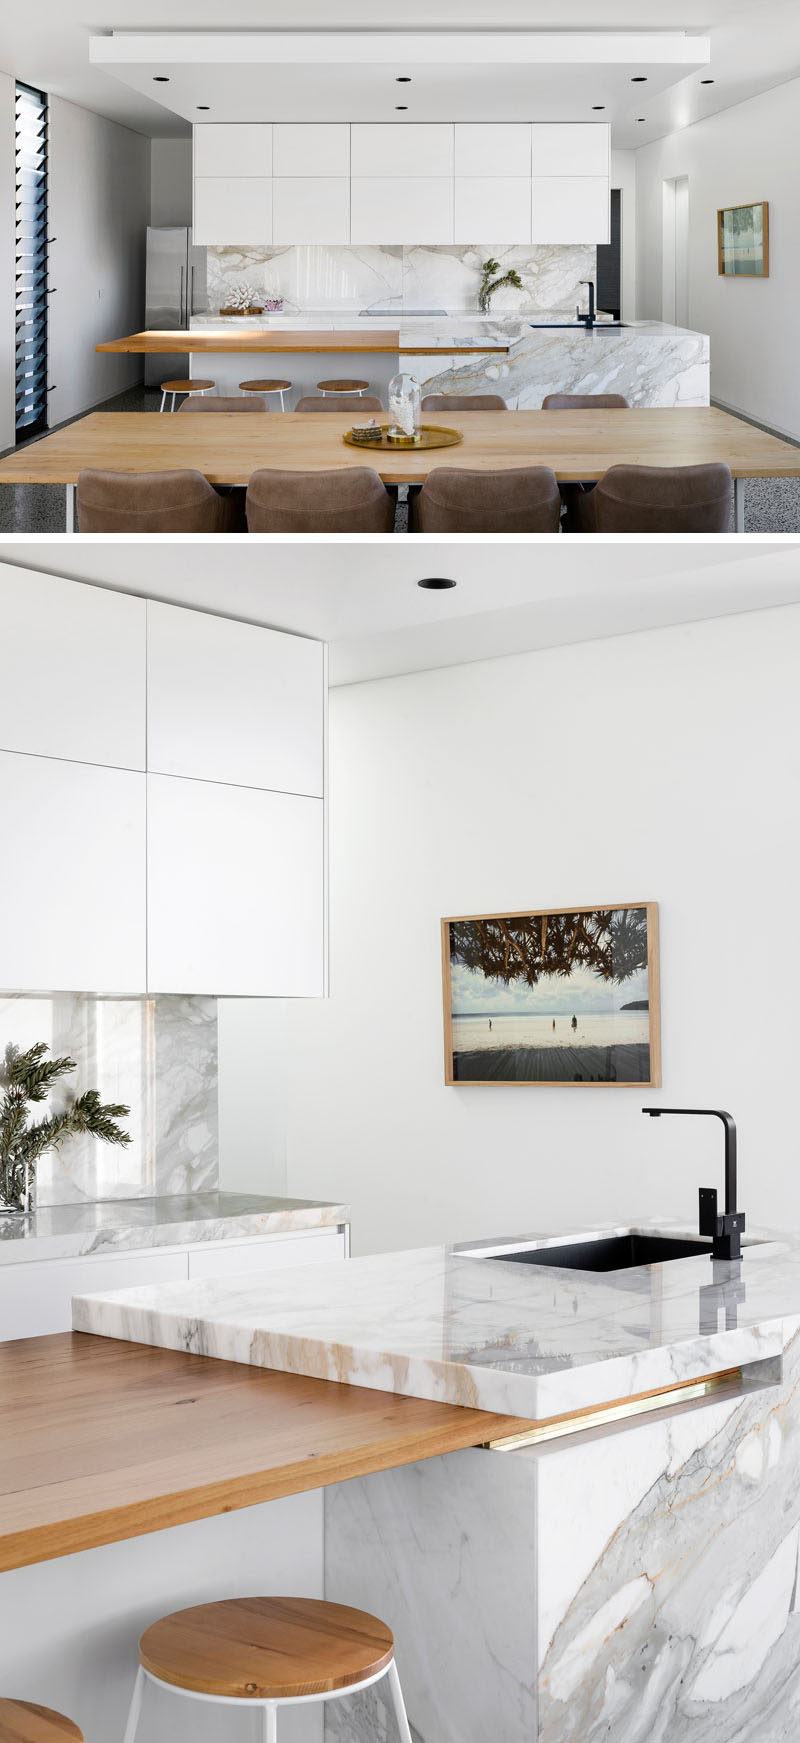 In this kitchen, white cabinetry is combined with stone and a wood countertop for a modern look. #ModernKitchen #KitchenDesign